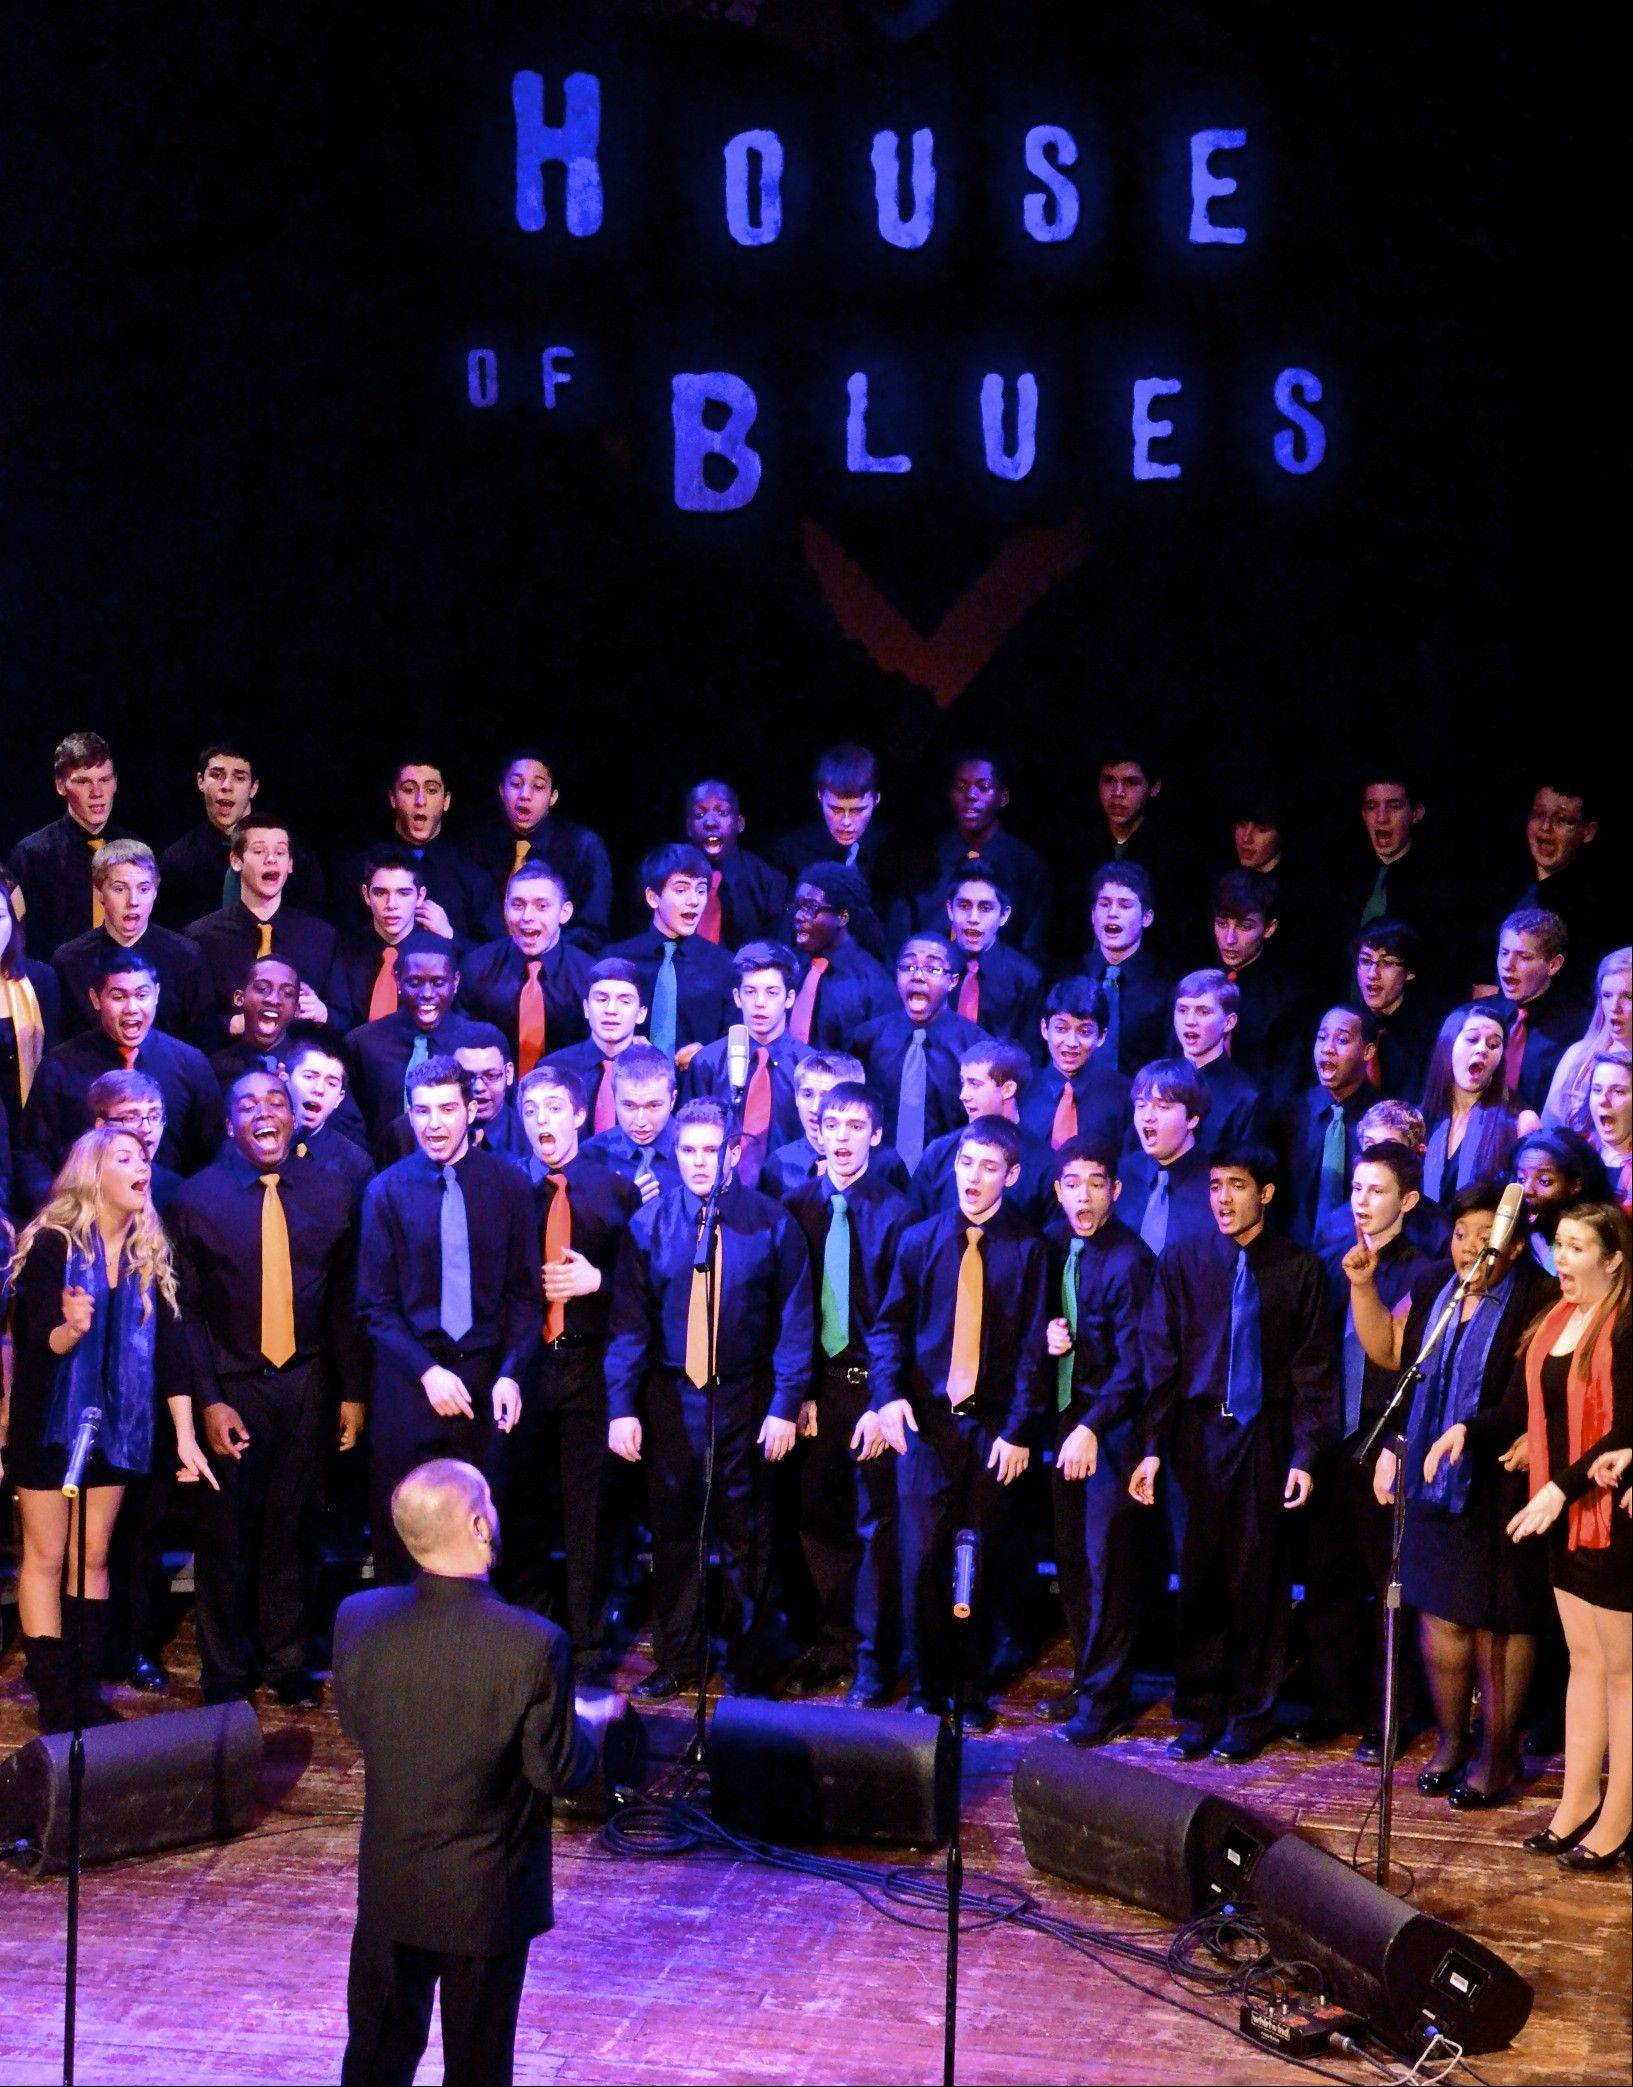 Led by Mark Myers, a Waubonsie Valley choral group gives a performance in the House of Blues in Chicago. Myers makes a point of introducing students to different genres of music and brings in other professionals to expose them to different teaching styles.